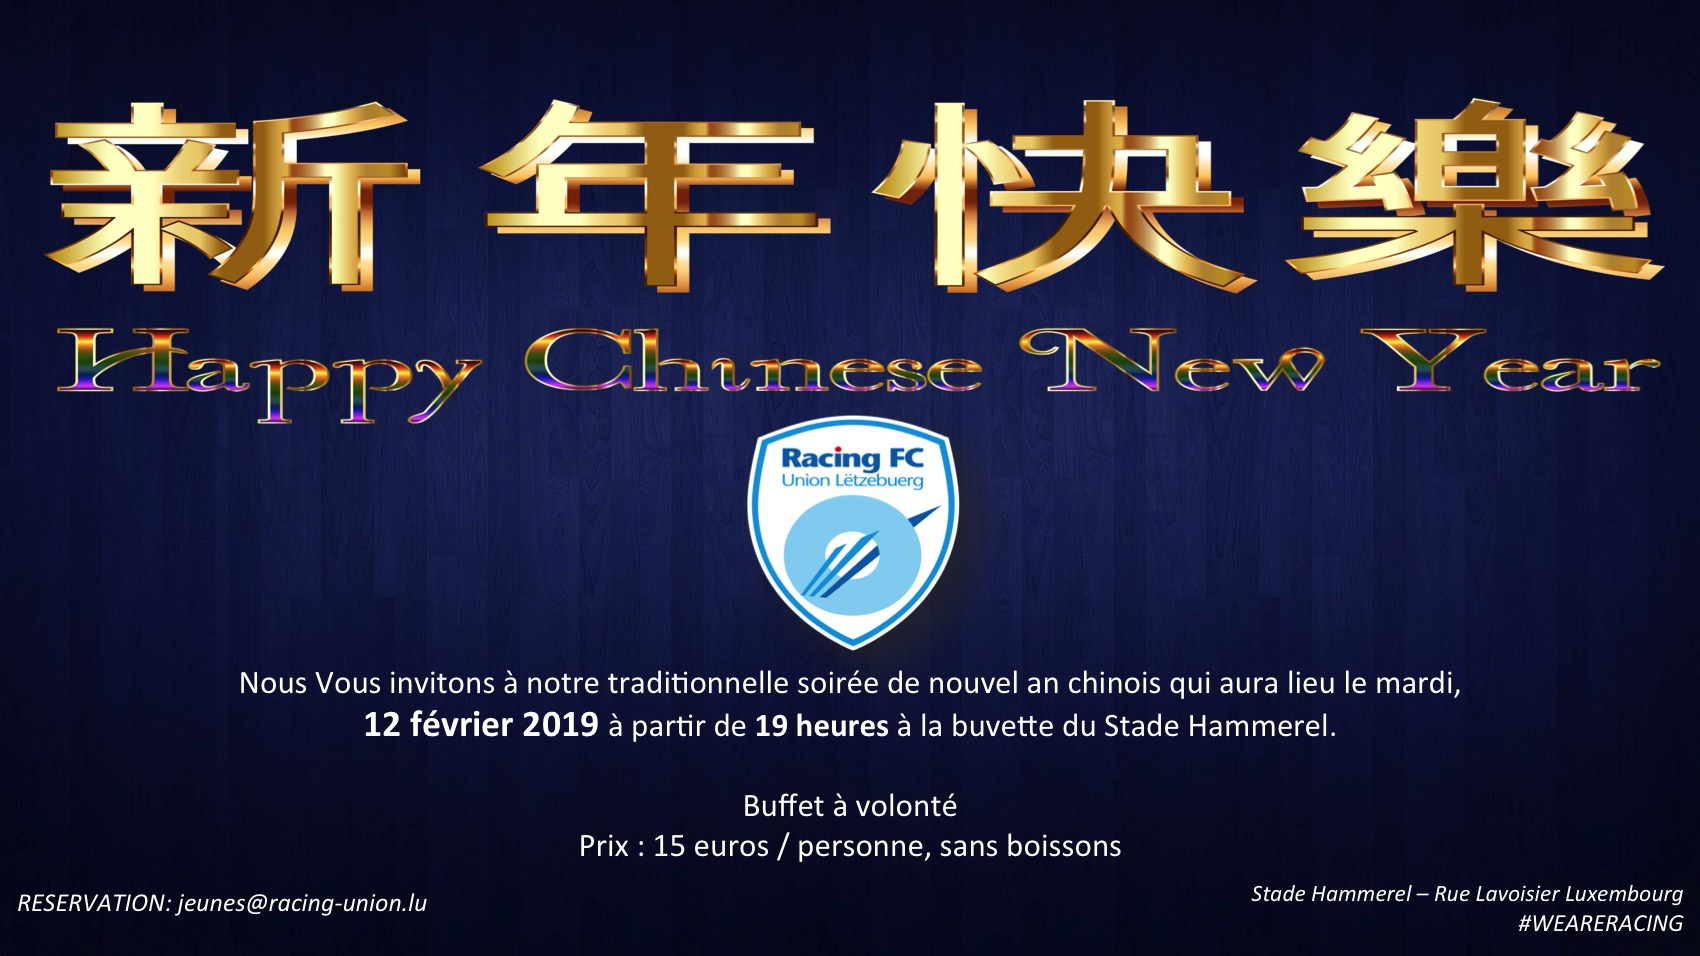 Nouvel An Chinois - Racing Union Luxembourg